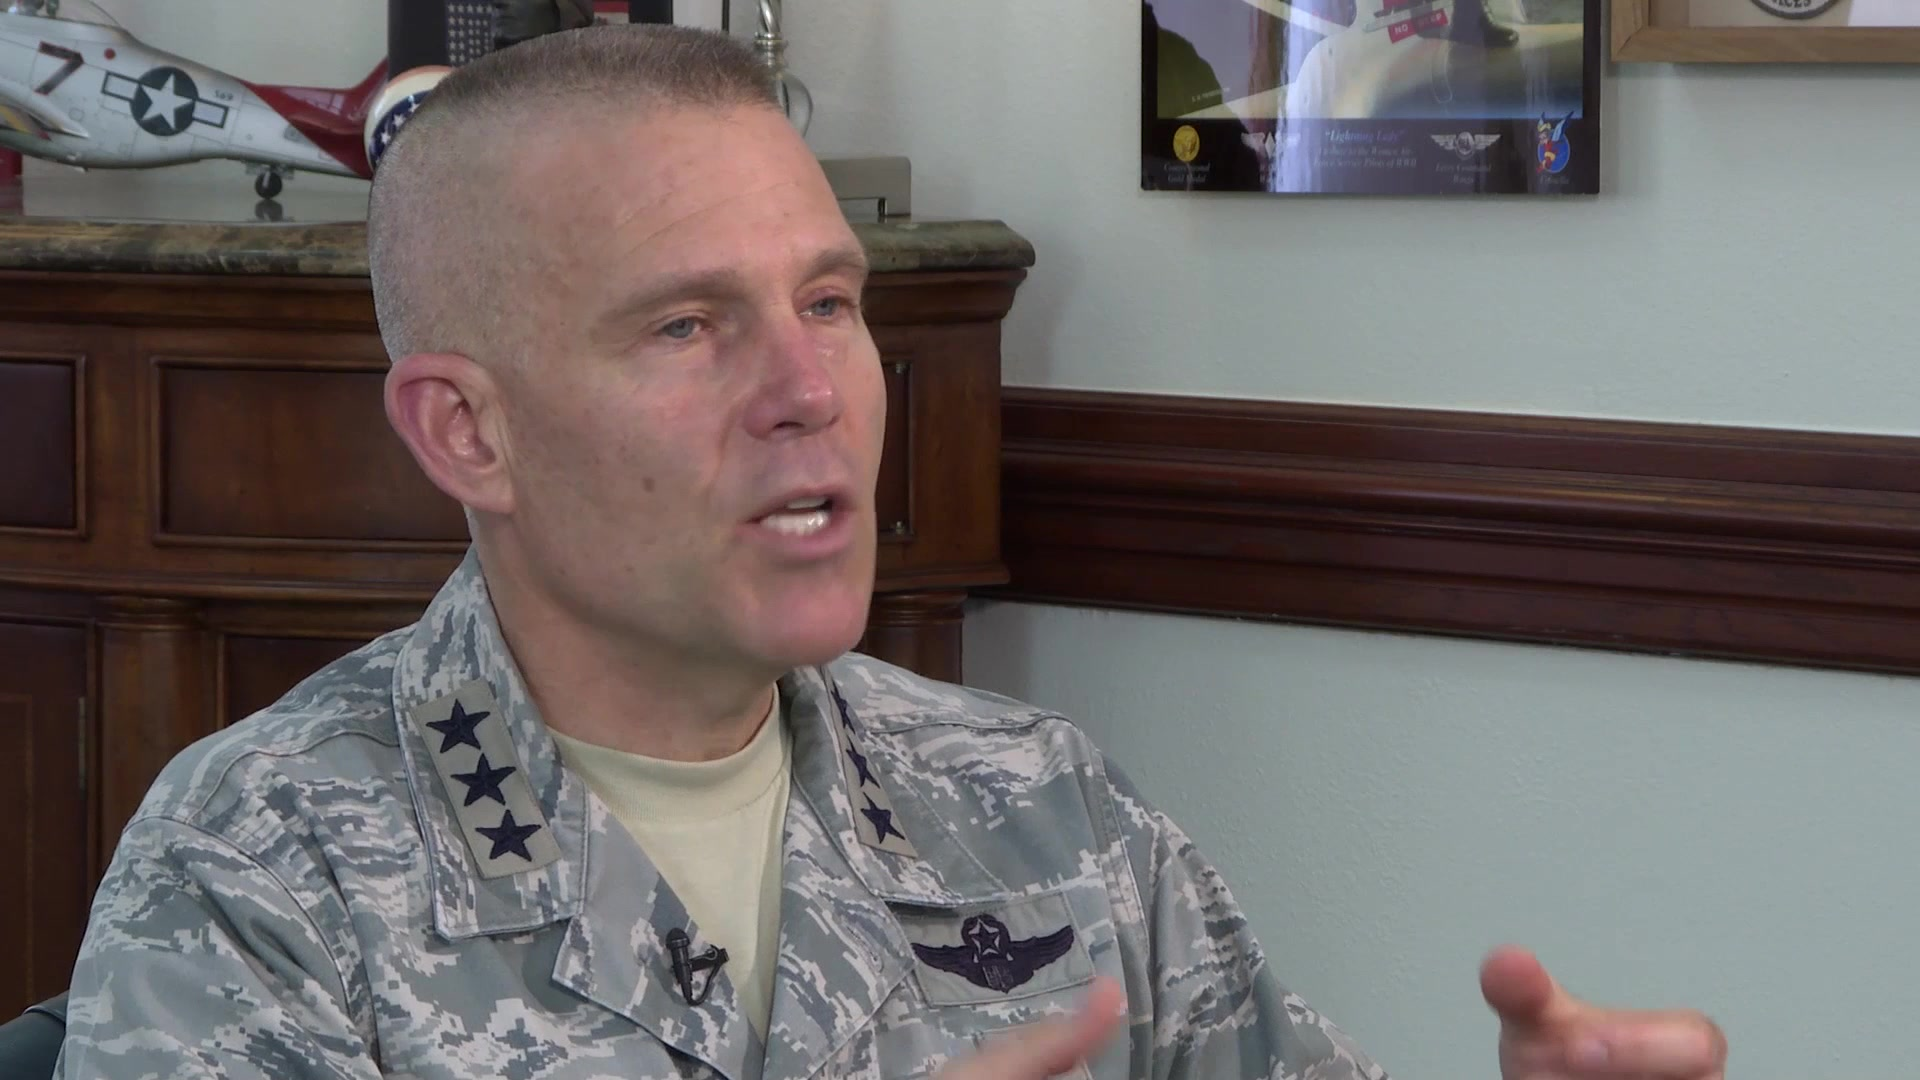 STATE OF AETC: Check out how Lt. Gen. Steve Kwast, commander of Air Education and Training Command, views failure as an opportunity to discover new ways to tackle problems!